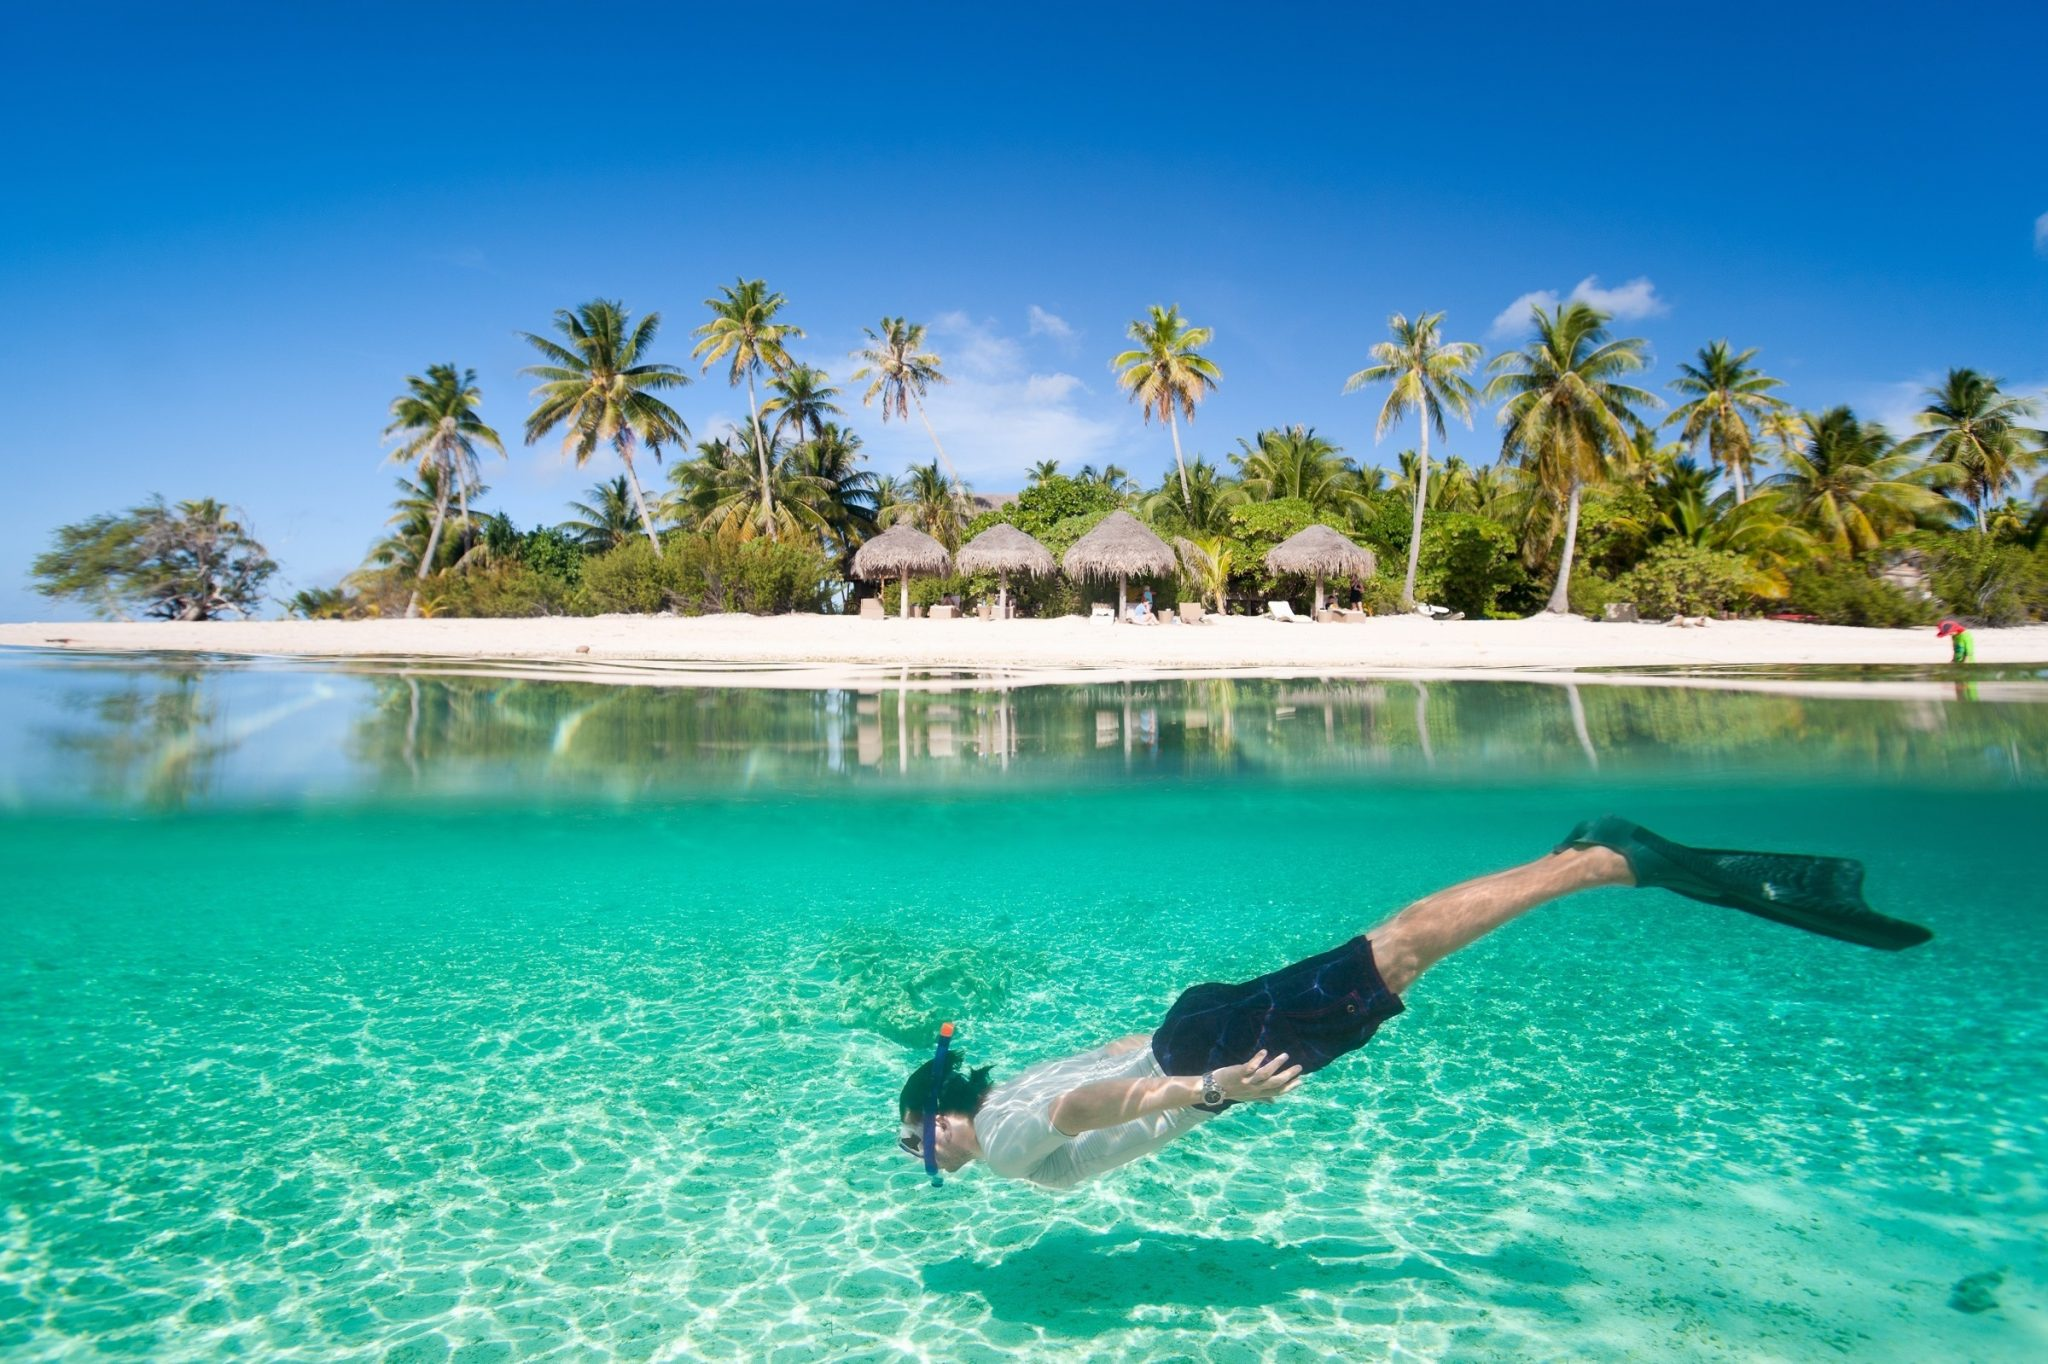 Man Snorkeling in Saona